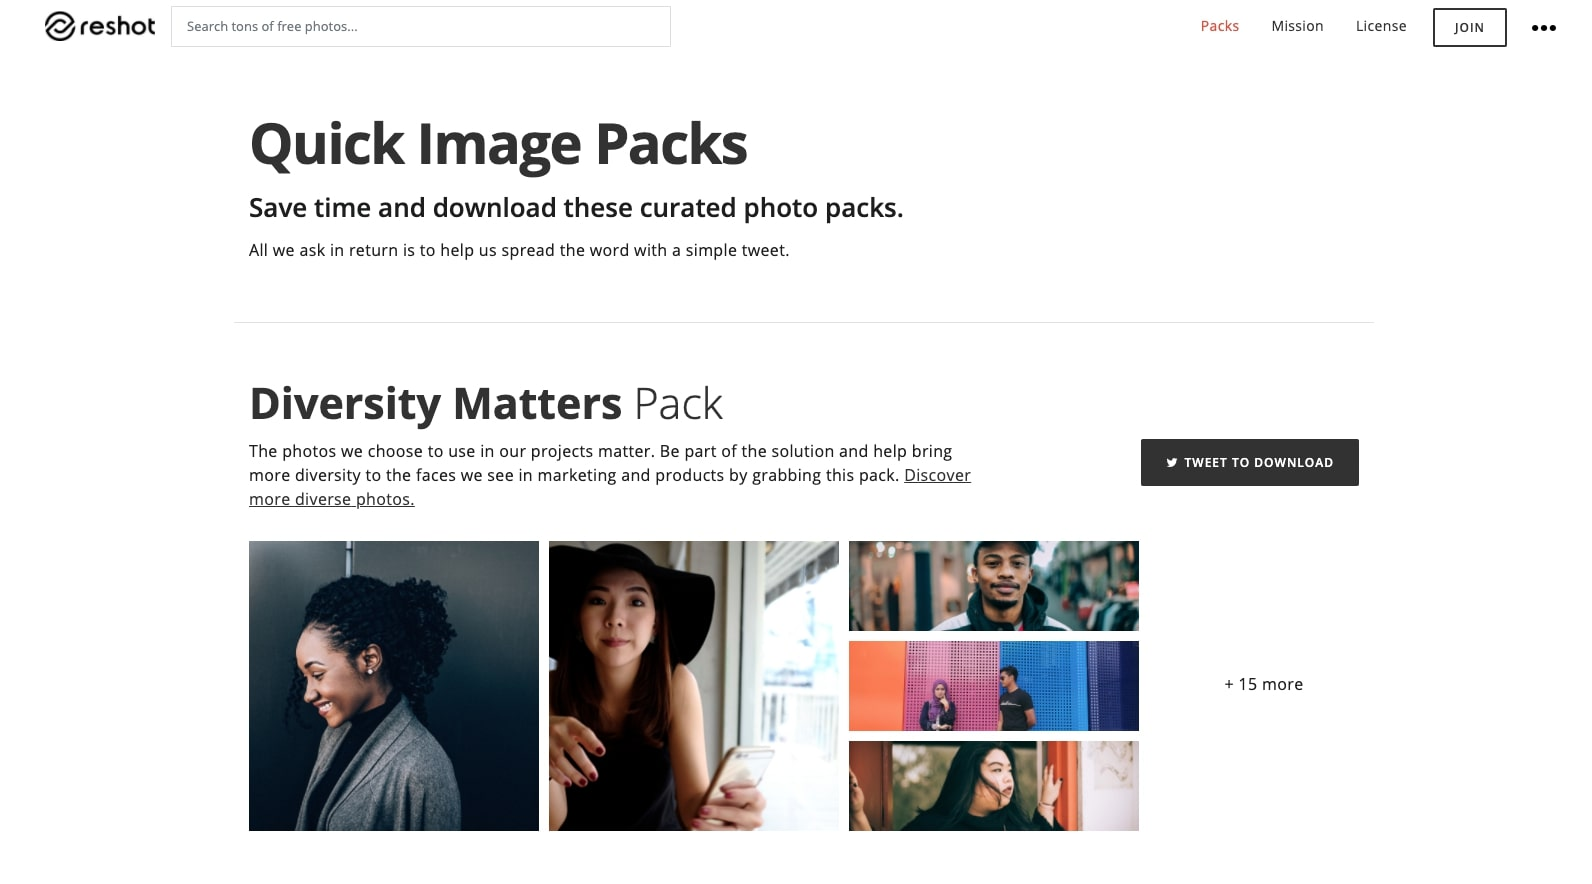 reshot image packs